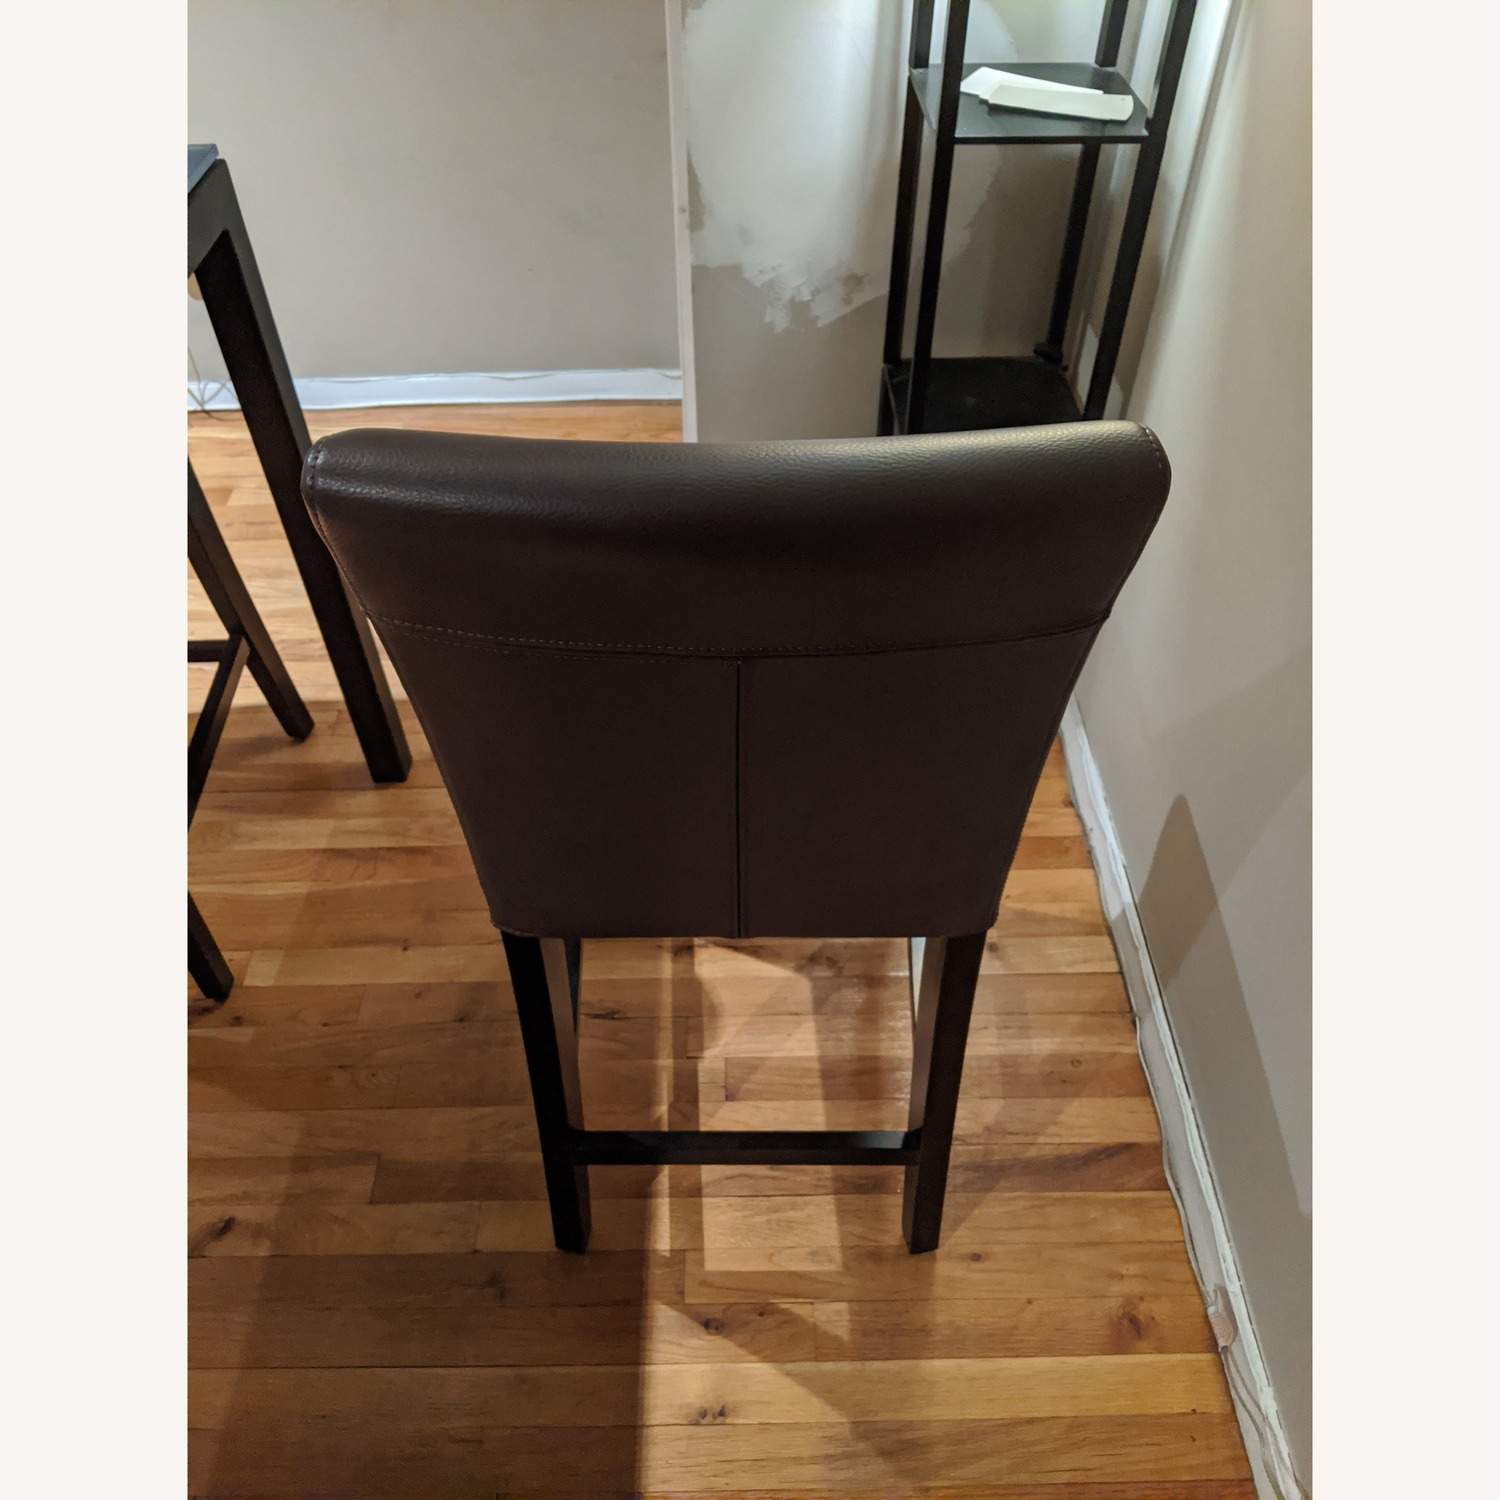 Crate & Barrel Grey/Gray Counter Chair/Stool - image-2